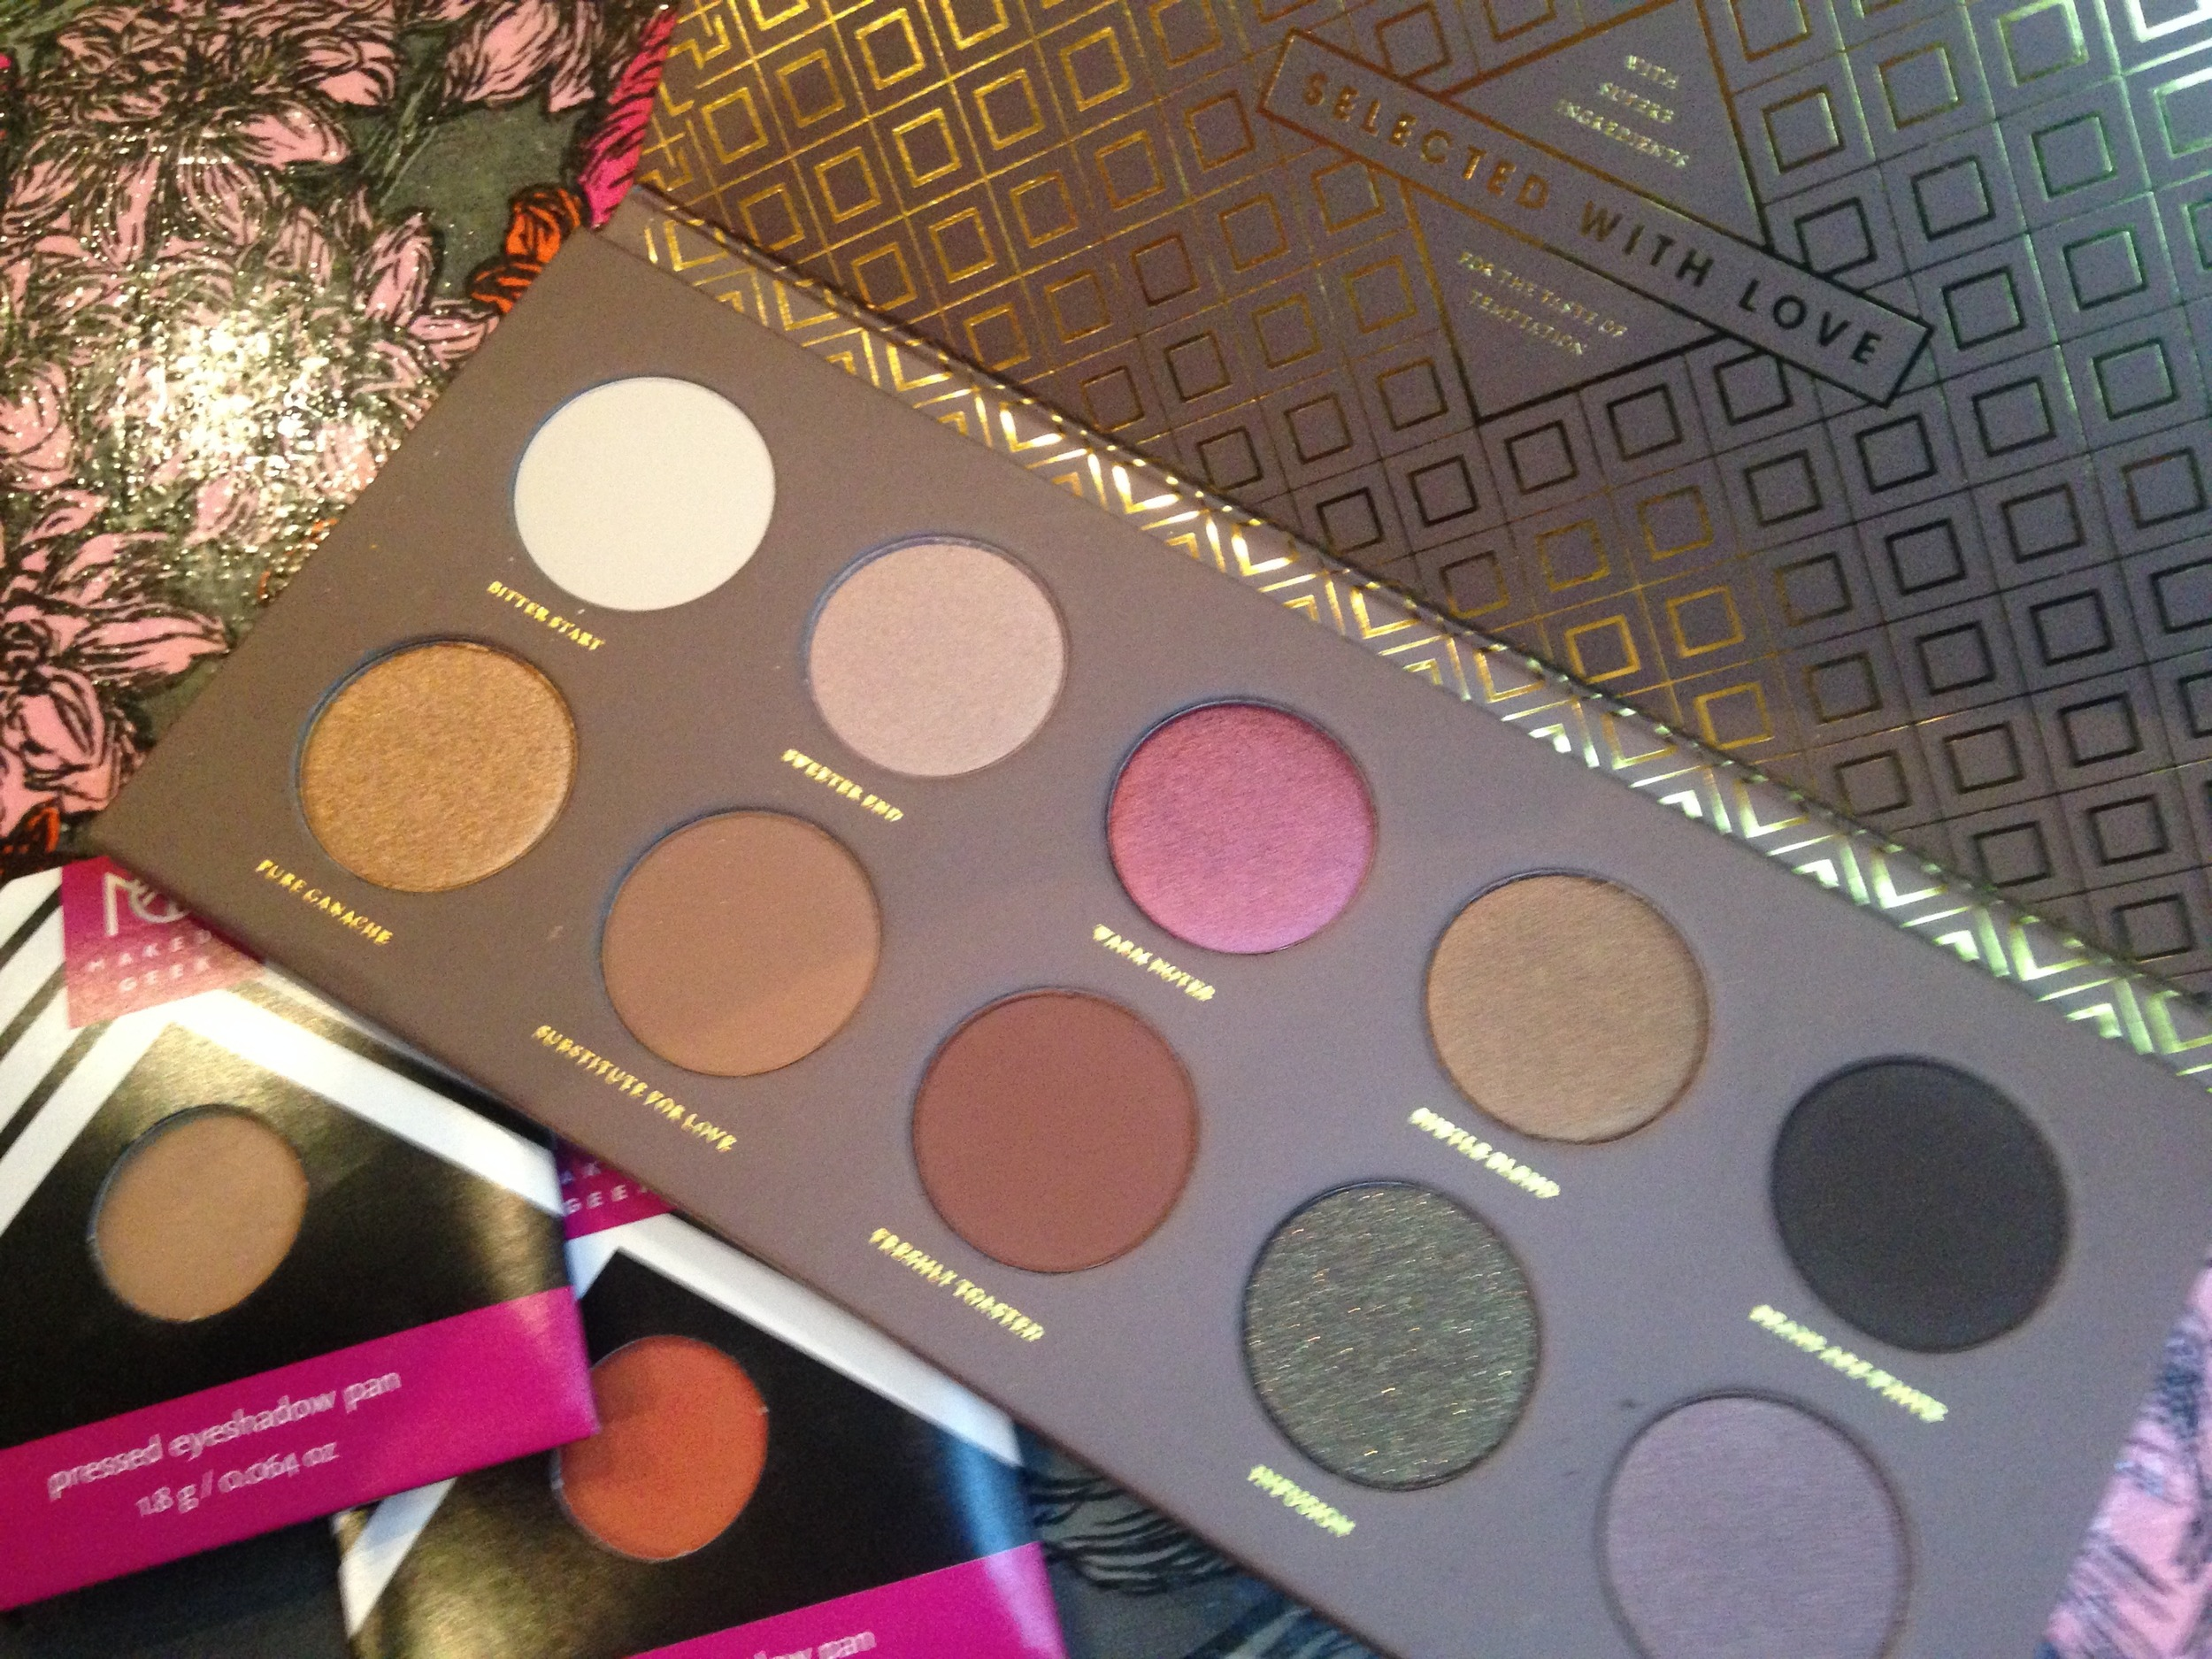 Make Up Geek eyeshadows in Creme Brulee (left) and Morocco and the Zoeva Cocoa Blend palatte